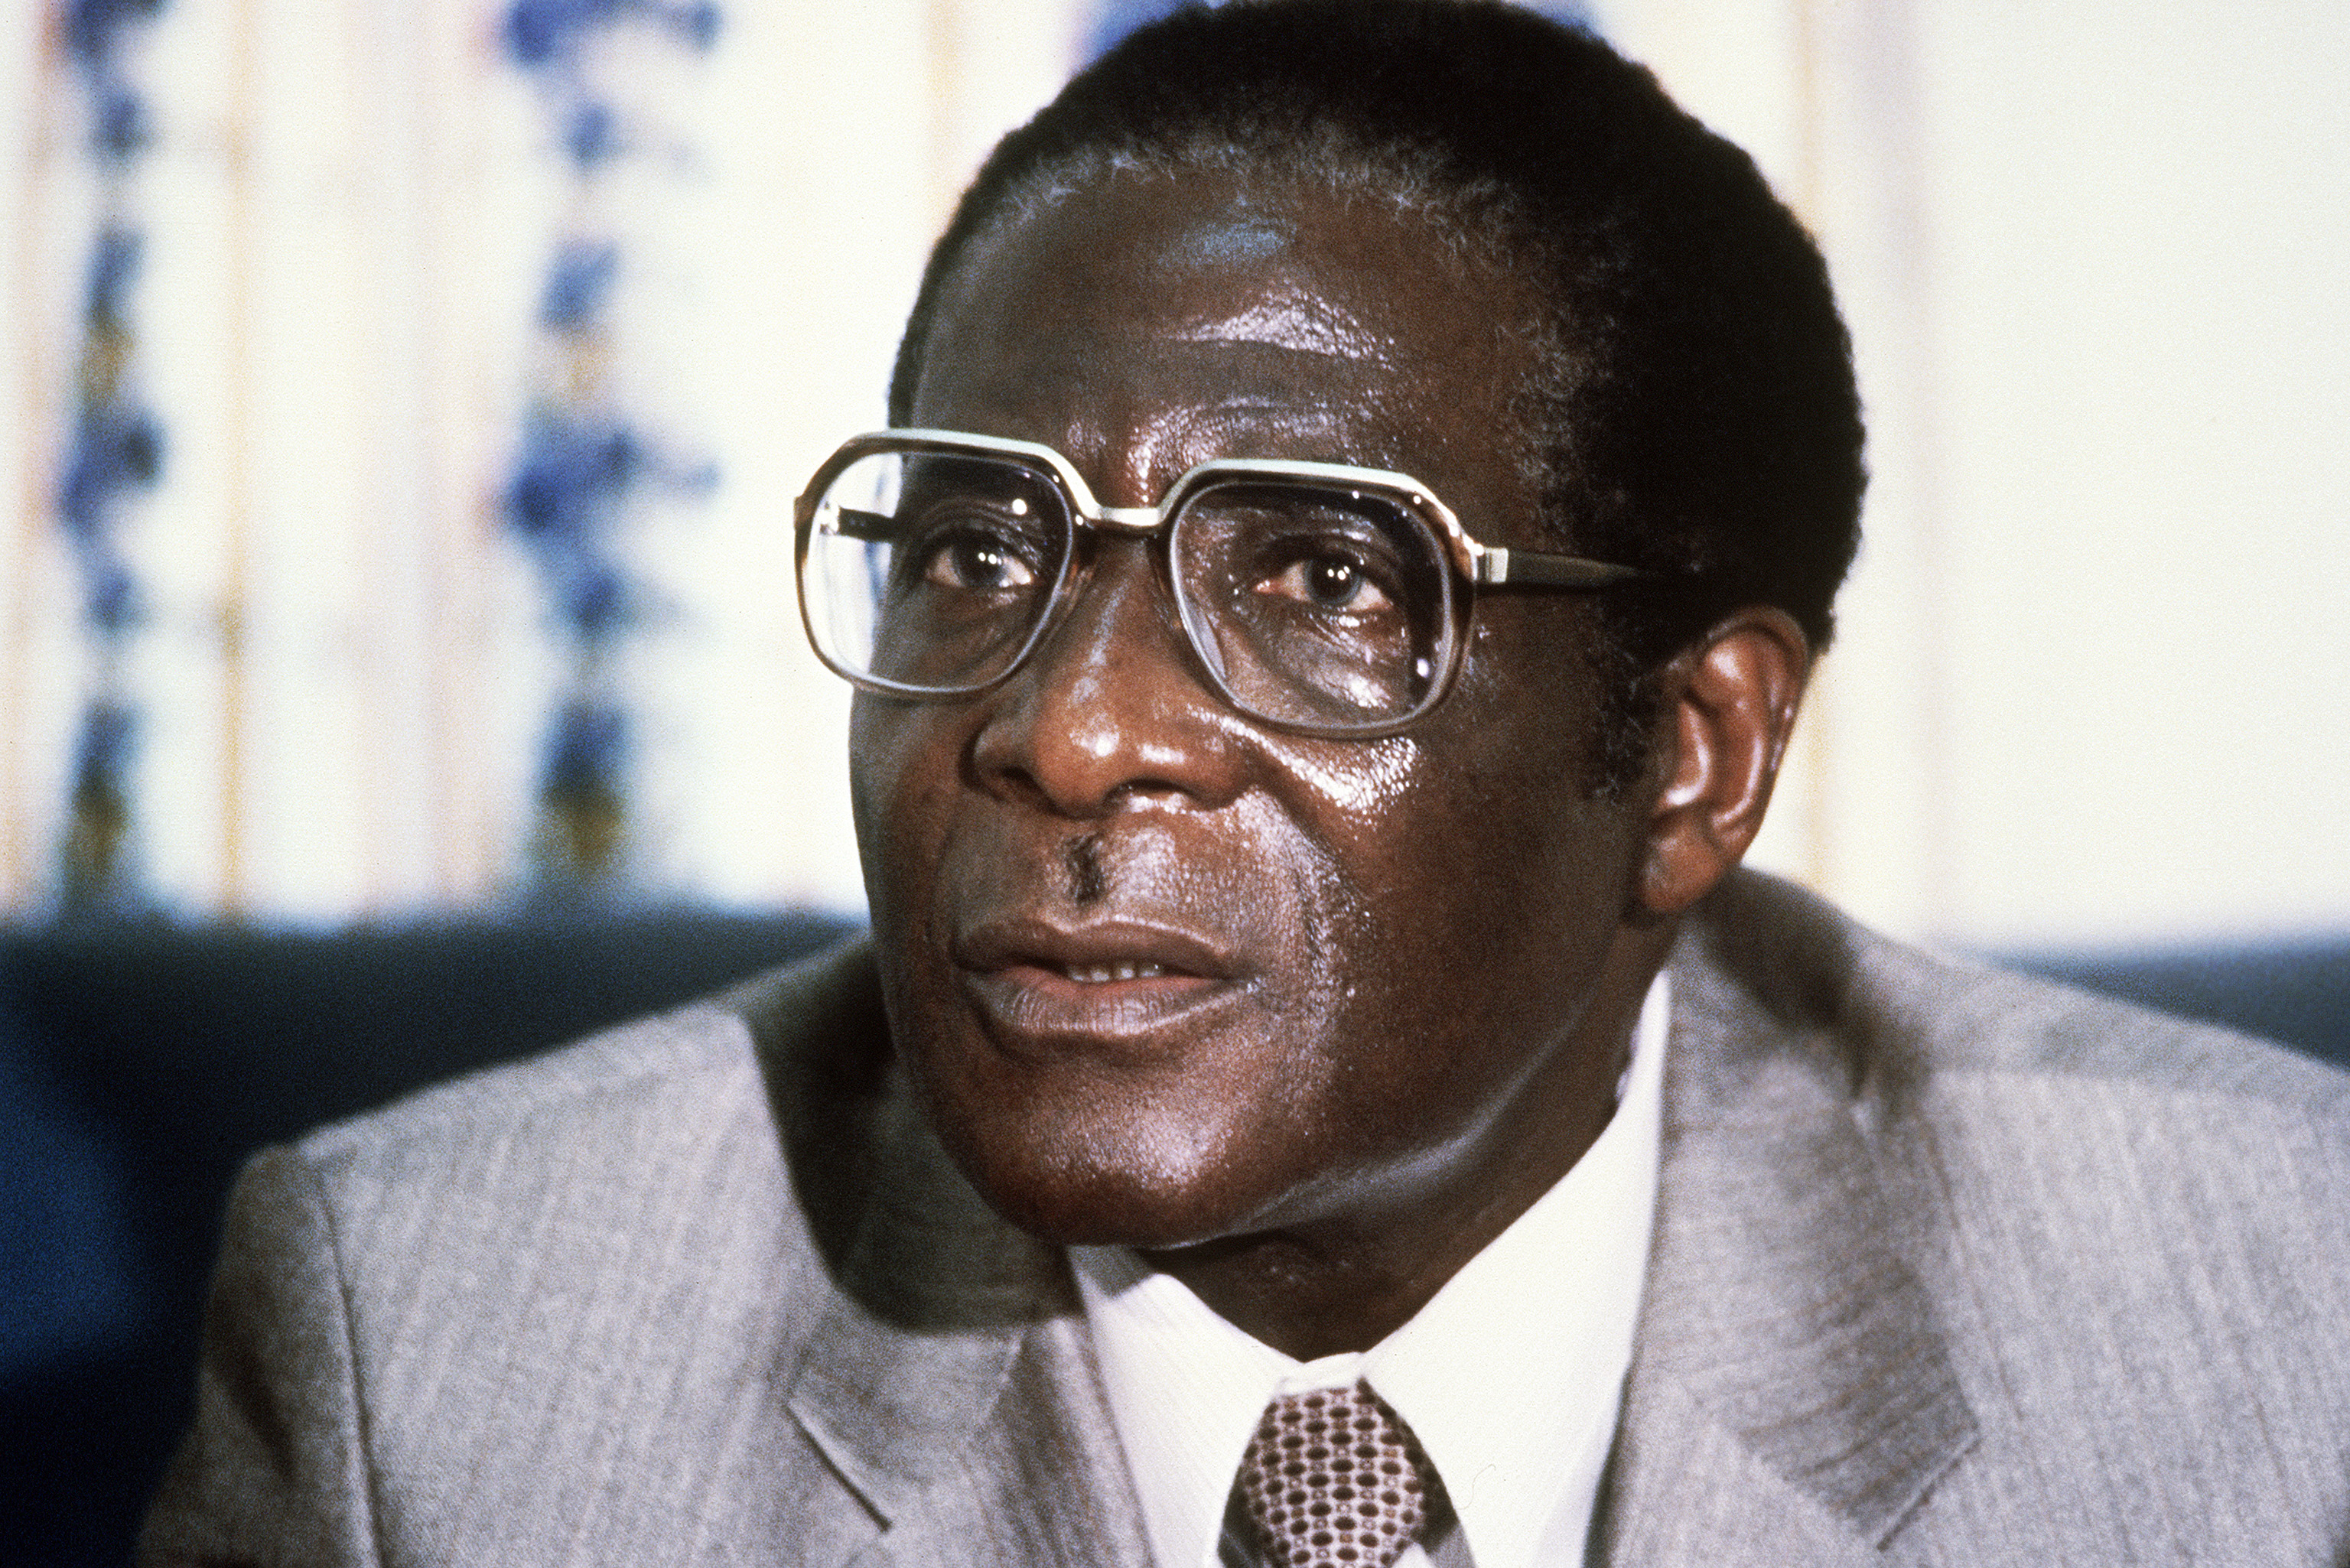 Zimbabwe's Prime Minister Robert Mugabe. Mugabe, Zimbabwean first Premier (in 1980) and President (in 1987), was born in Kutama in 1924 (formerly Southern Rhodesia).